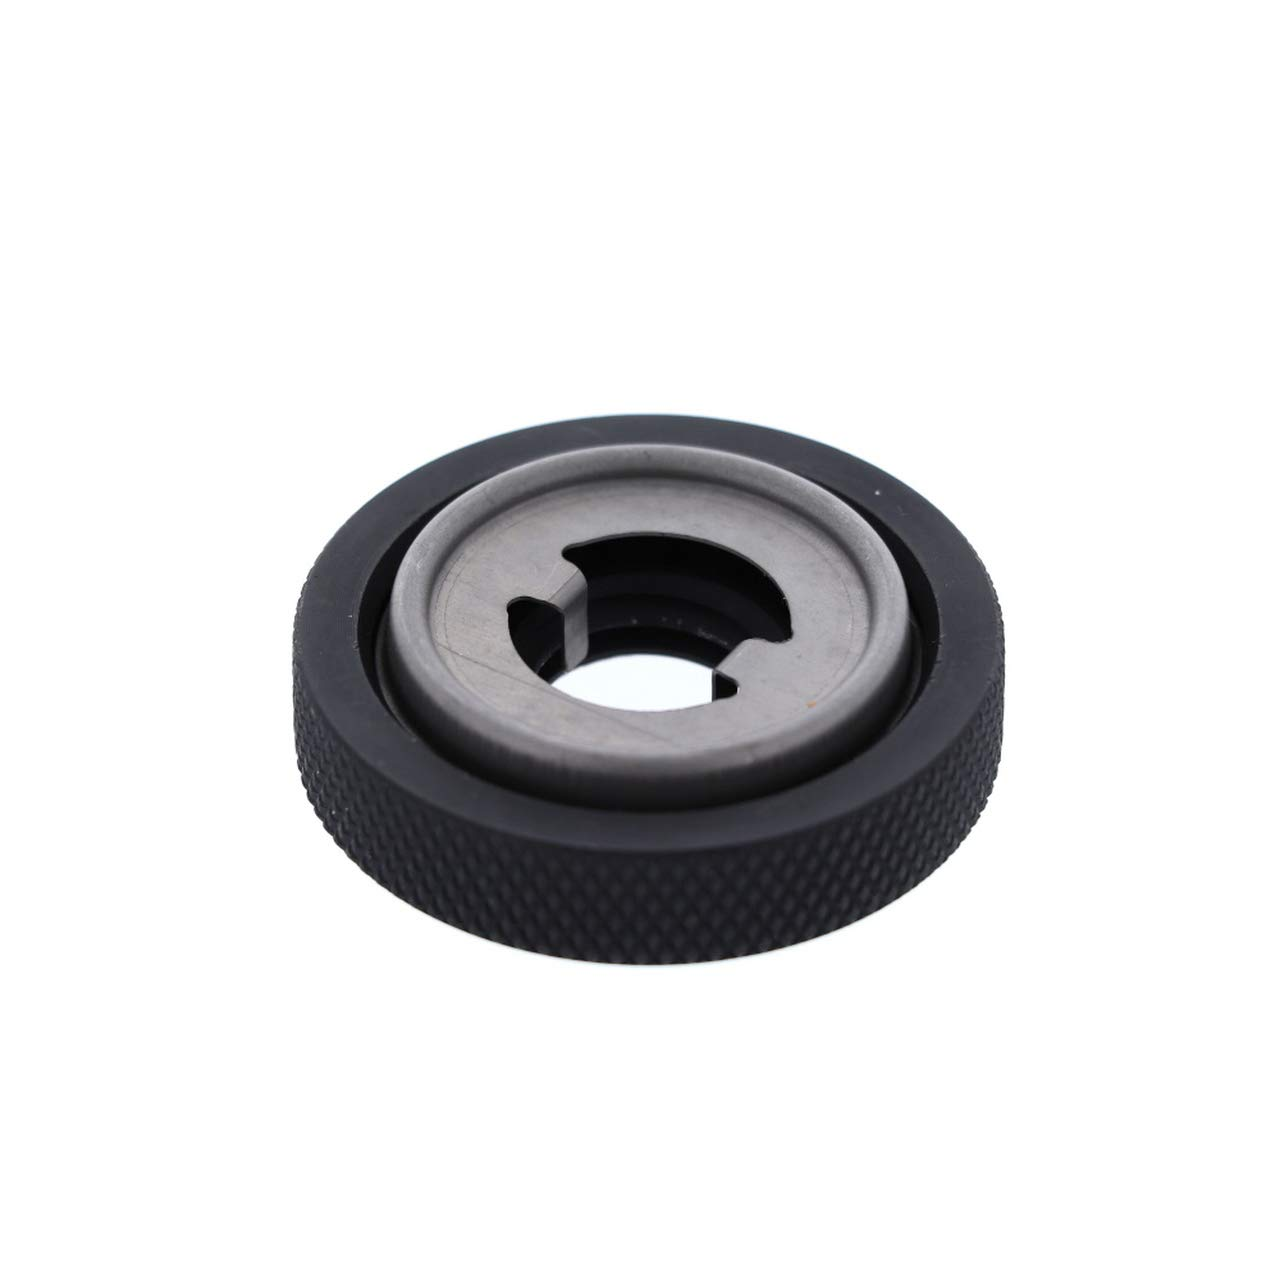 OEM N484249 replacement angle grinder flanged hex nut DCG413 DCG414